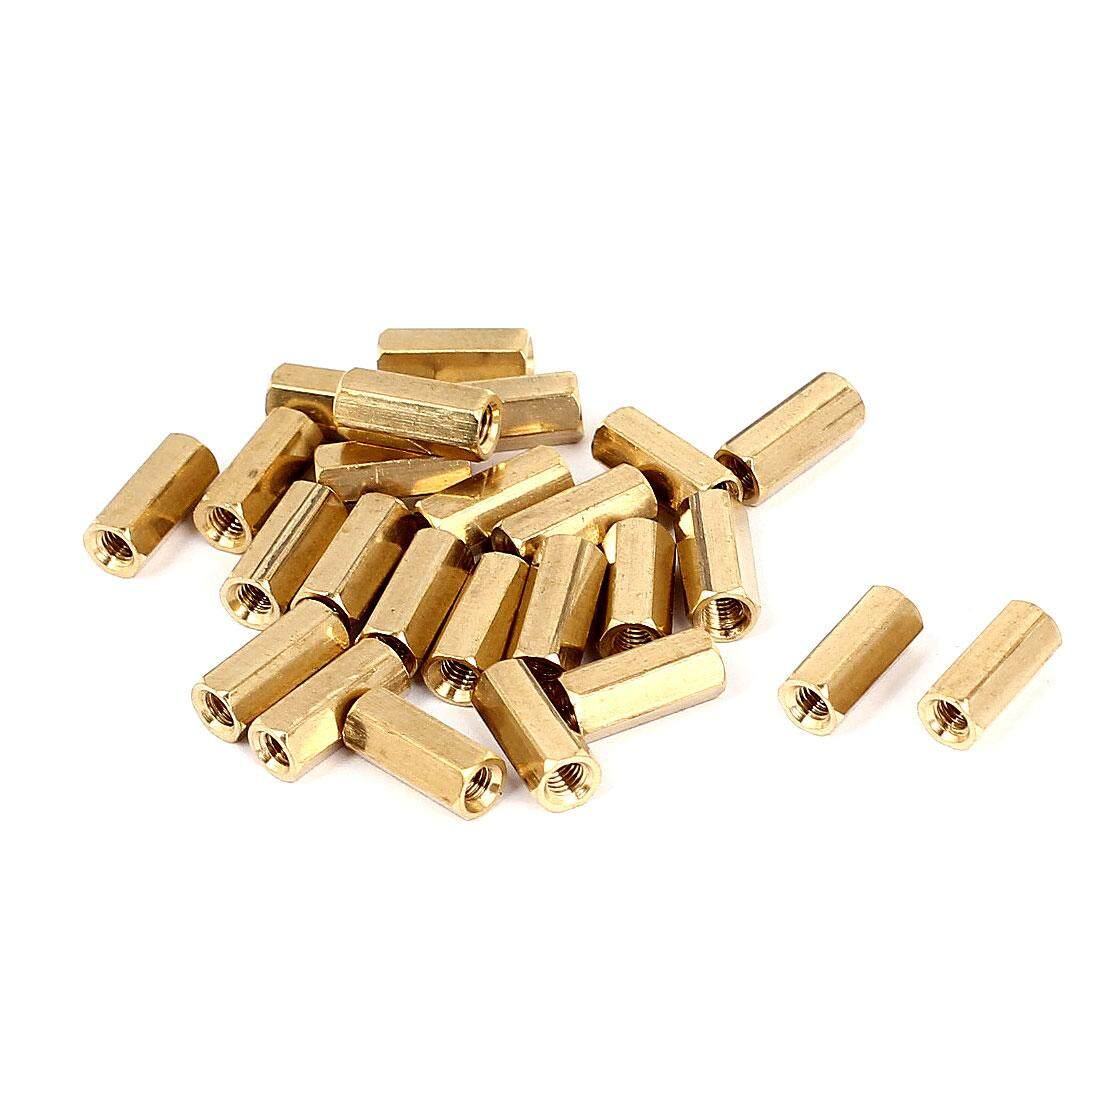 Buy Sell Cheapest Axa M3 12 Best Quality Product Deals 120pcs Copper Silver Brass Pillars Standoff Circuit Board Pcb Nut X 11mm Female Thread Hex Pillar Rod Spacer Coupler 25pcs